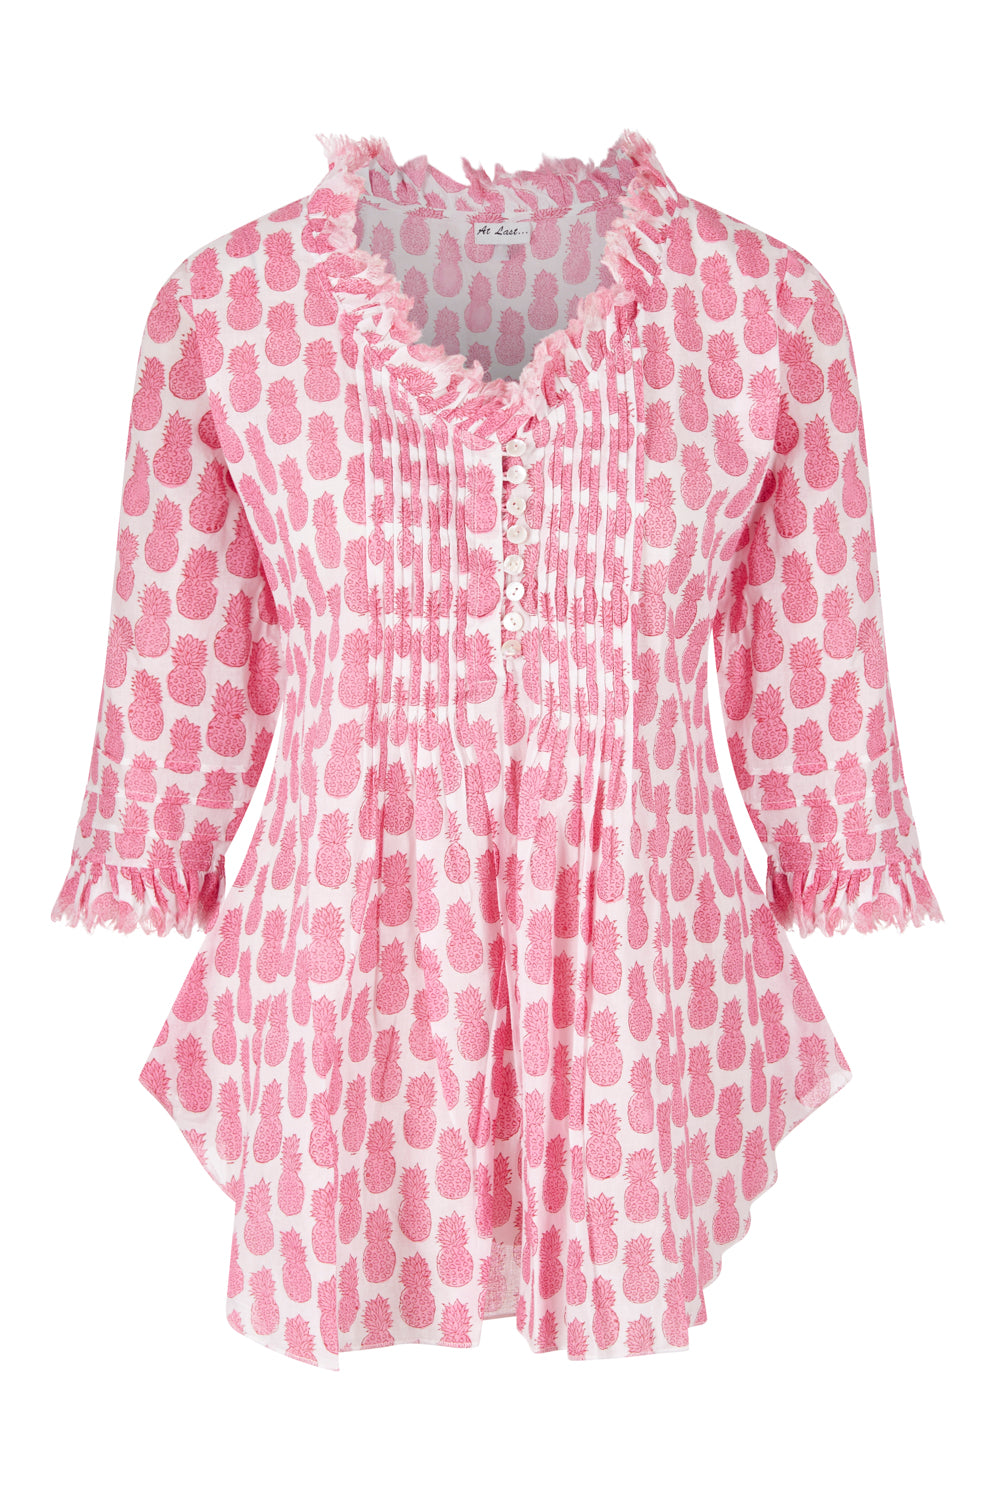 Sophie Cotton shirt - Mini Pink Pineapples